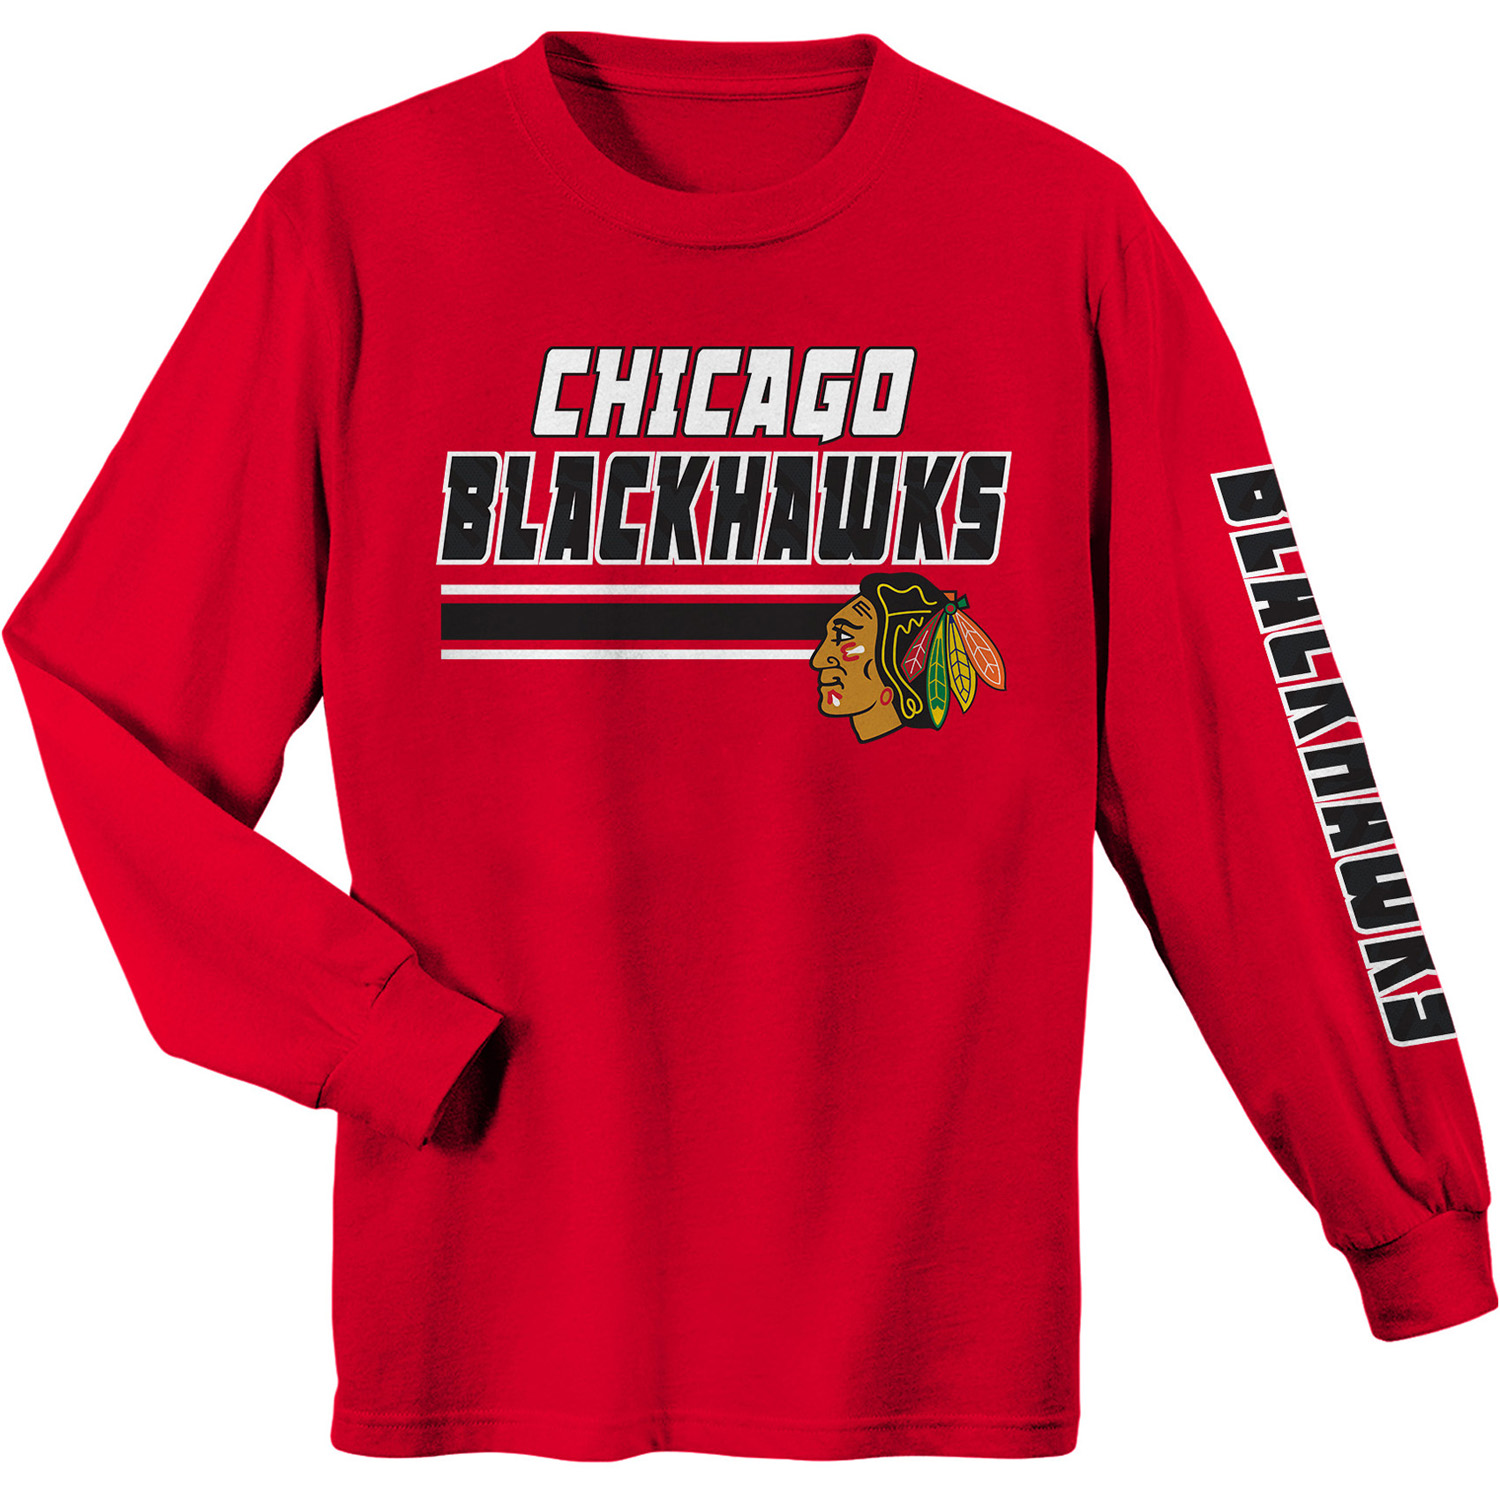 Youth Red Chicago Blackhawks Long Sleeve T-Shirt